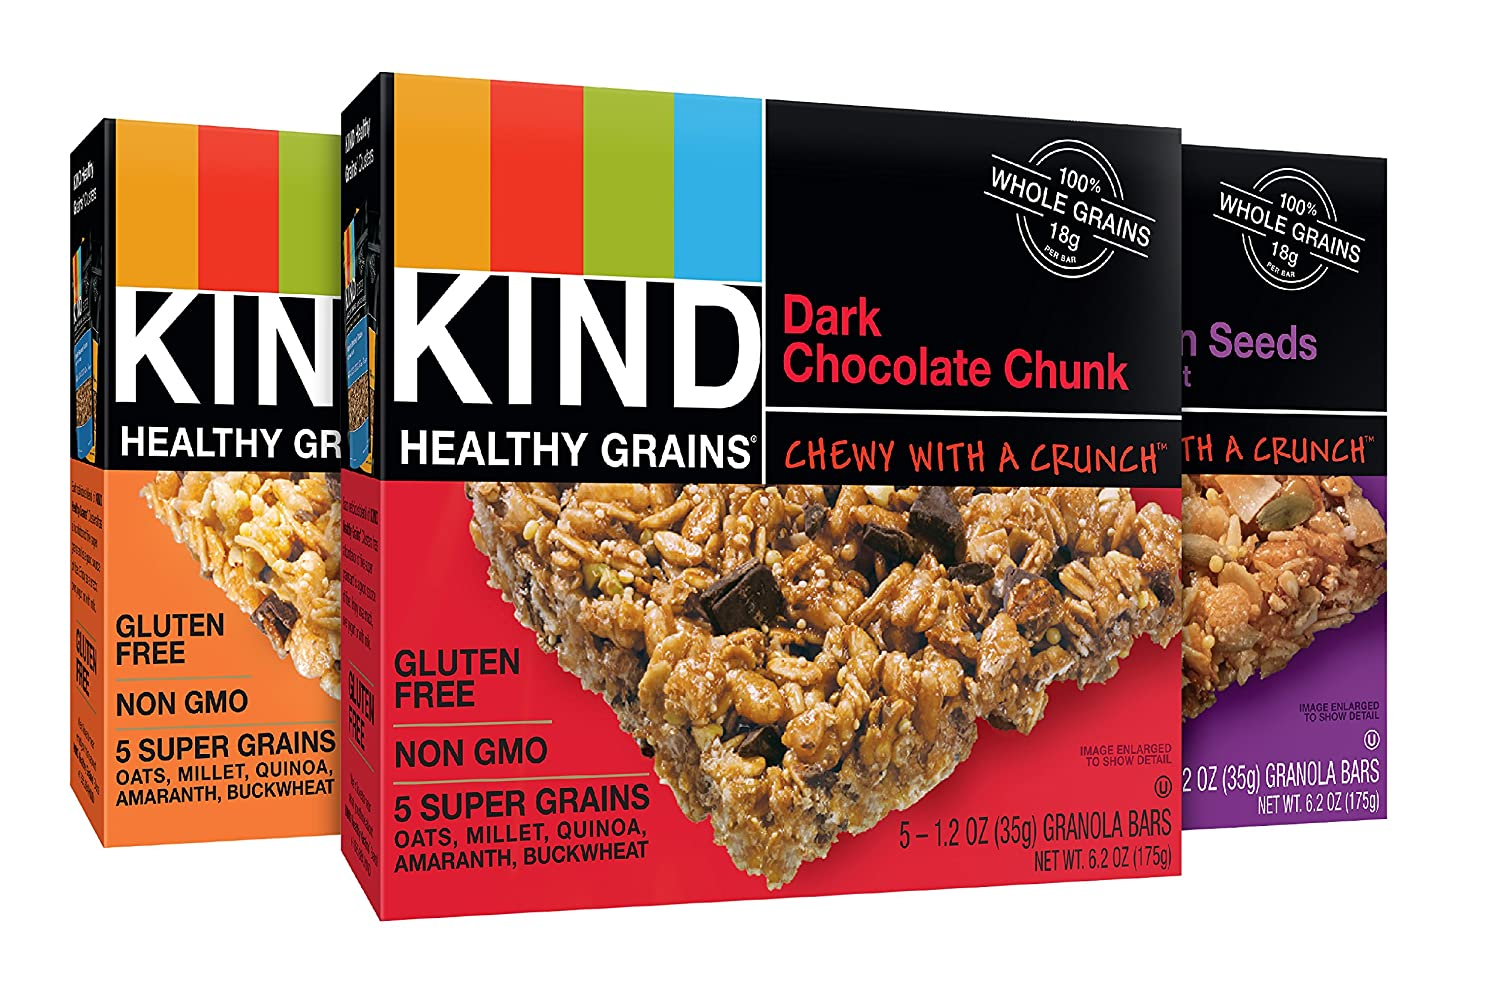 KIND Healthy Grains Granola Bars, Variety Pack, Gluten Free, 15 Count